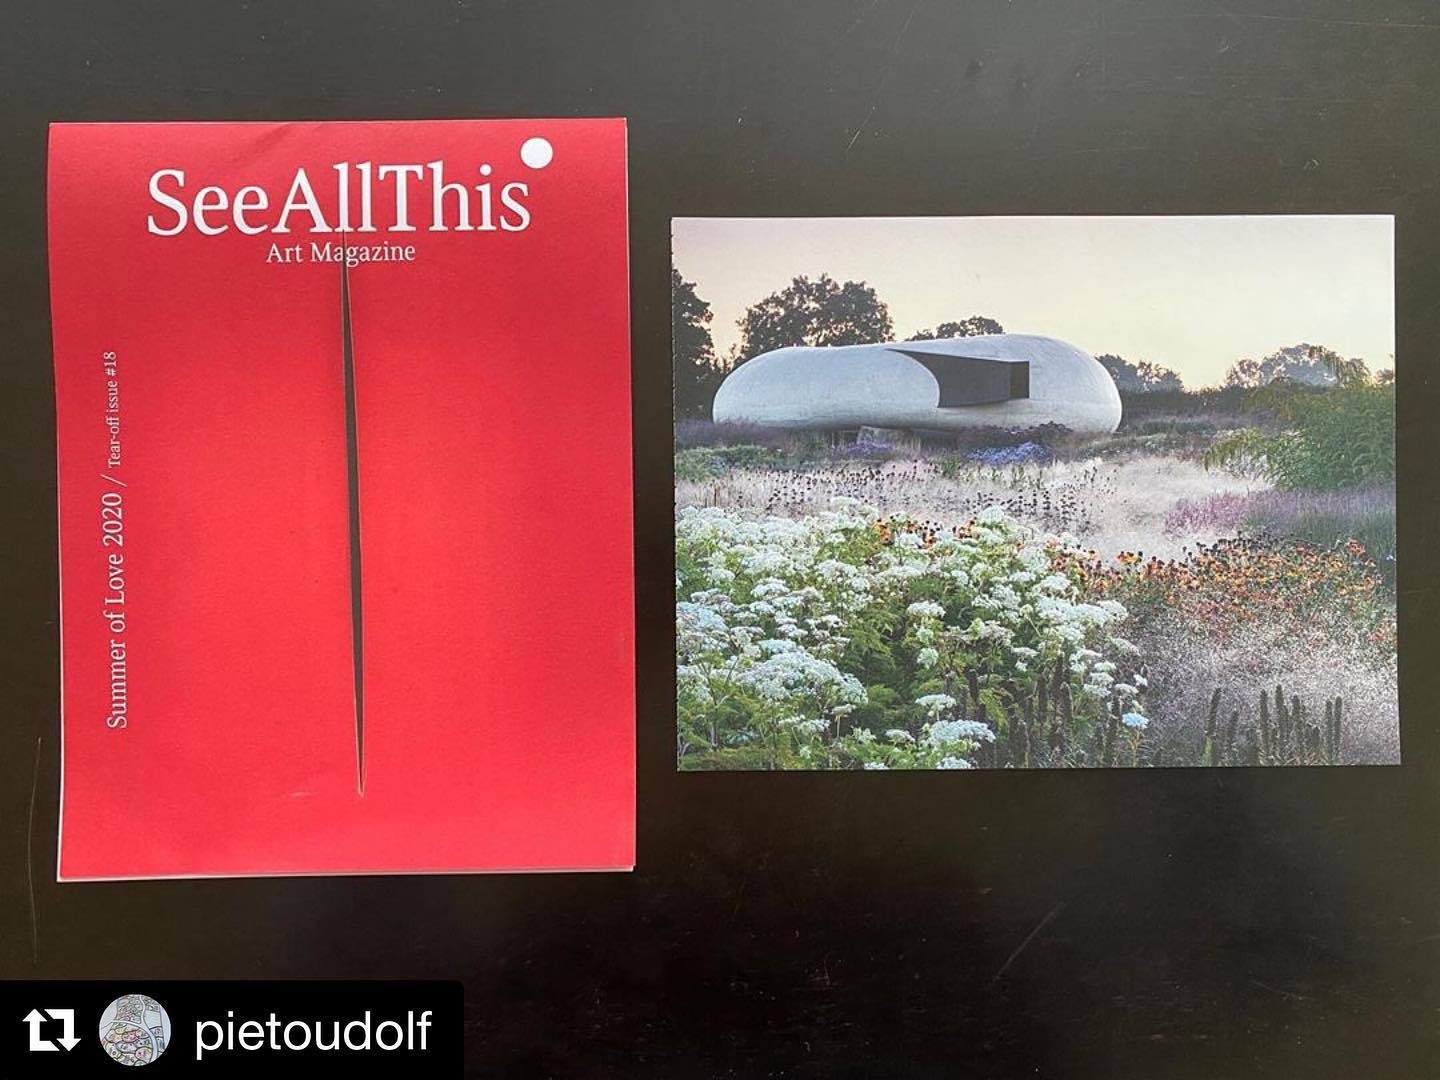 #Repost @pietoudolf with @get_repost・・・The garden at Hauser&Wirth,Somerset Seen in the beautiful publication of @seeallthis A magazine about Art and Artists.Photo:Jason Ingram #hauserwirthsomerset